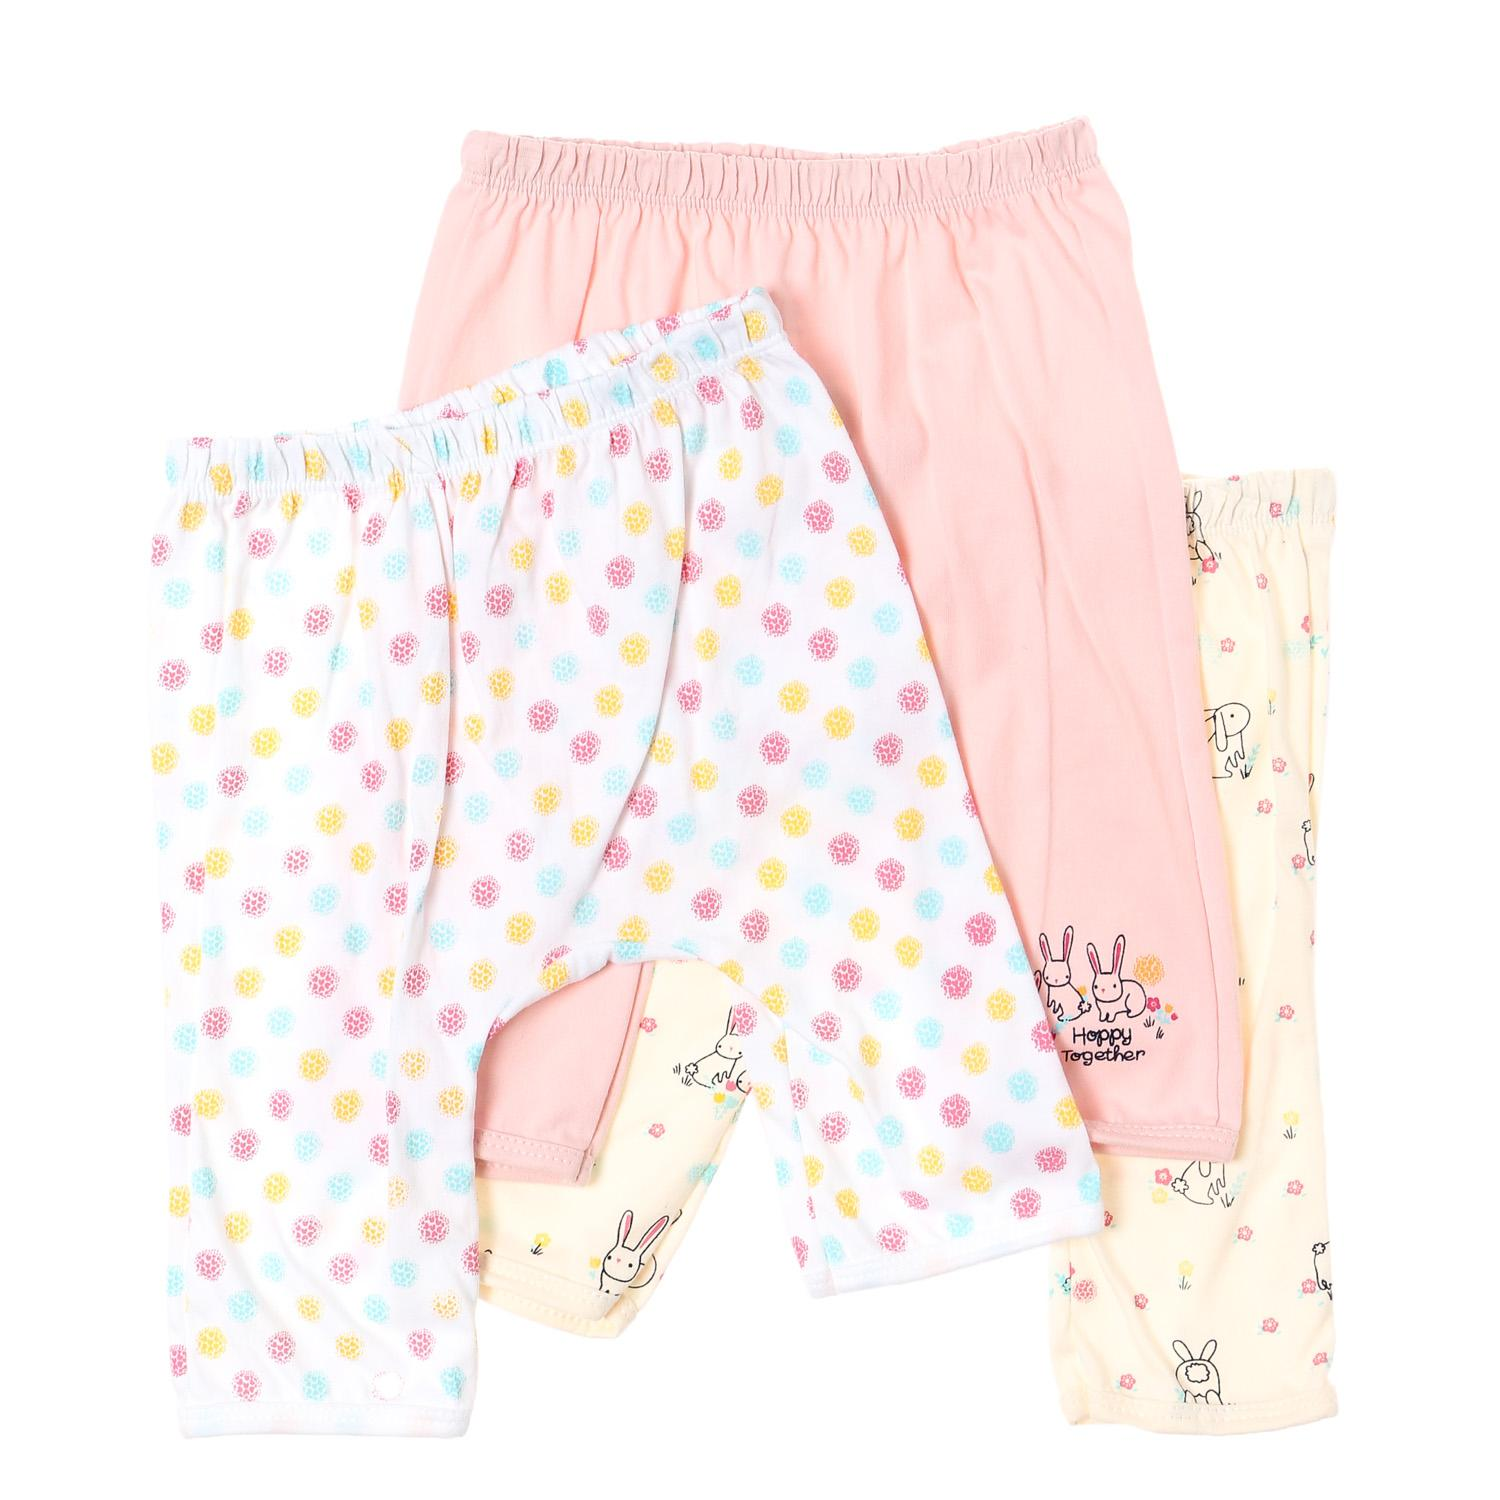 fde059723a7f Girls Clothing and Accessories for sale - Baby Clothing Accessories ...